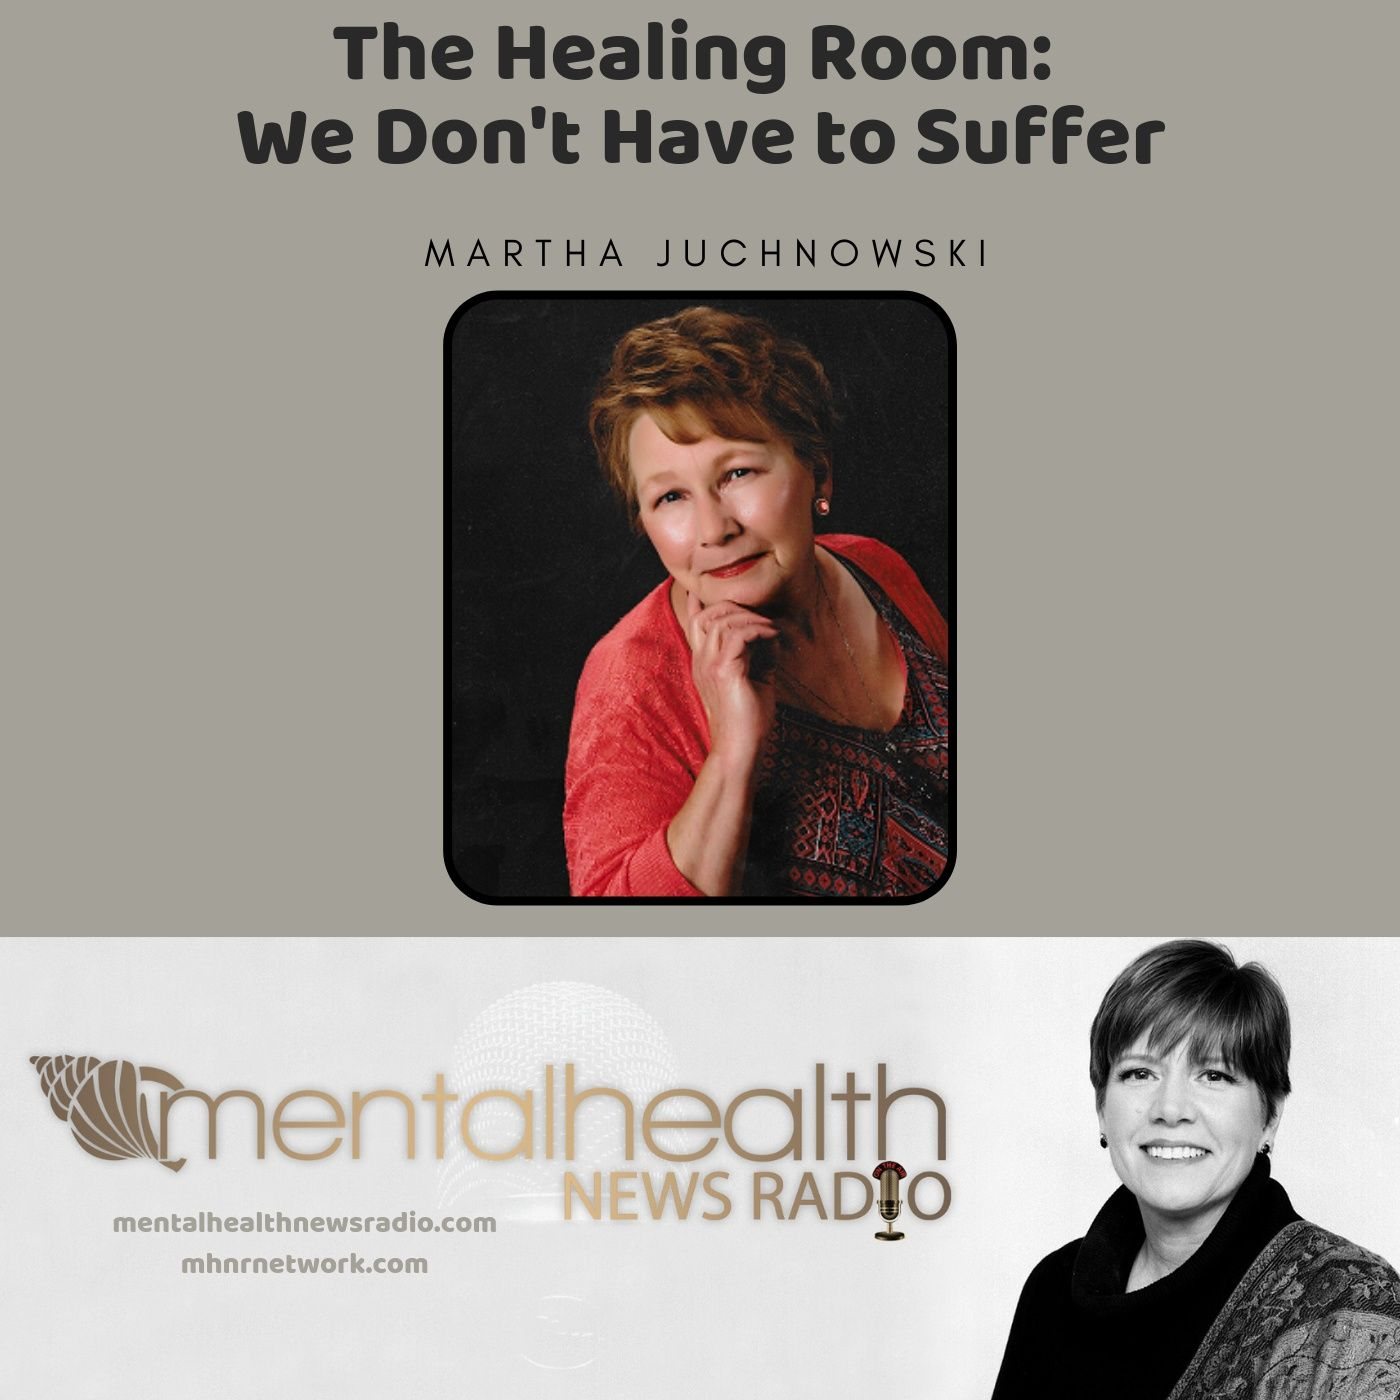 Mental Health News Radio - The Healing Room: We Don't Have to Suffer